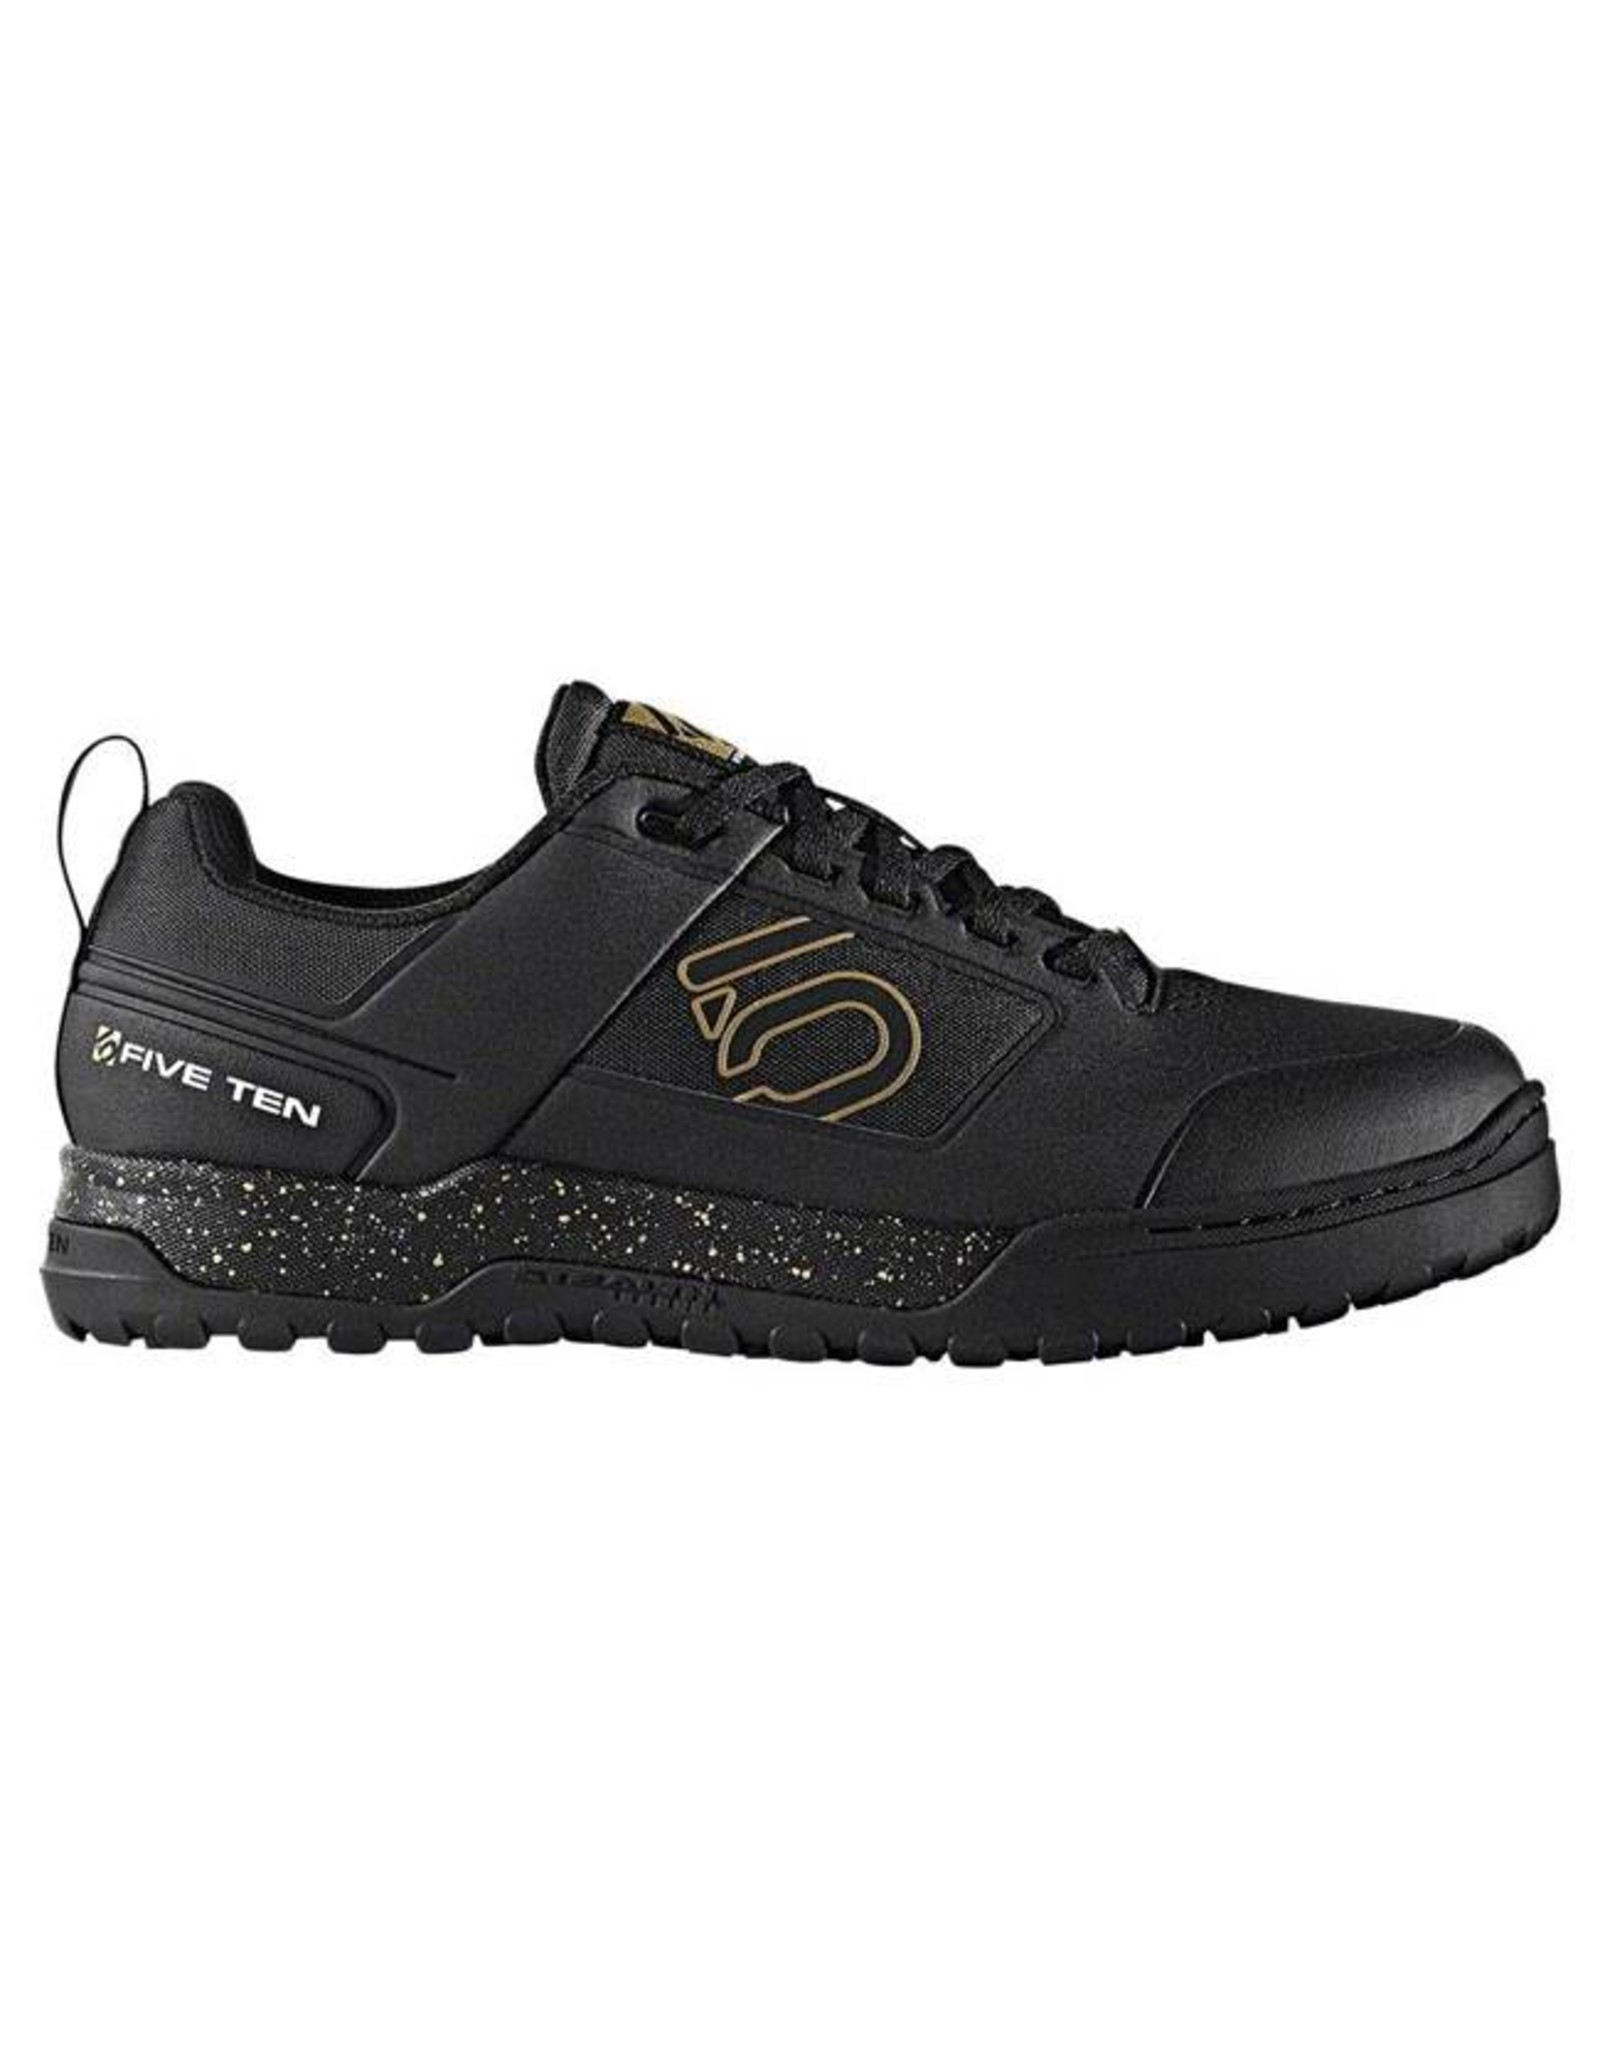 Five Ten Five Ten Impact Pro Men's Flat Pedal Shoe: Black/Gold 13